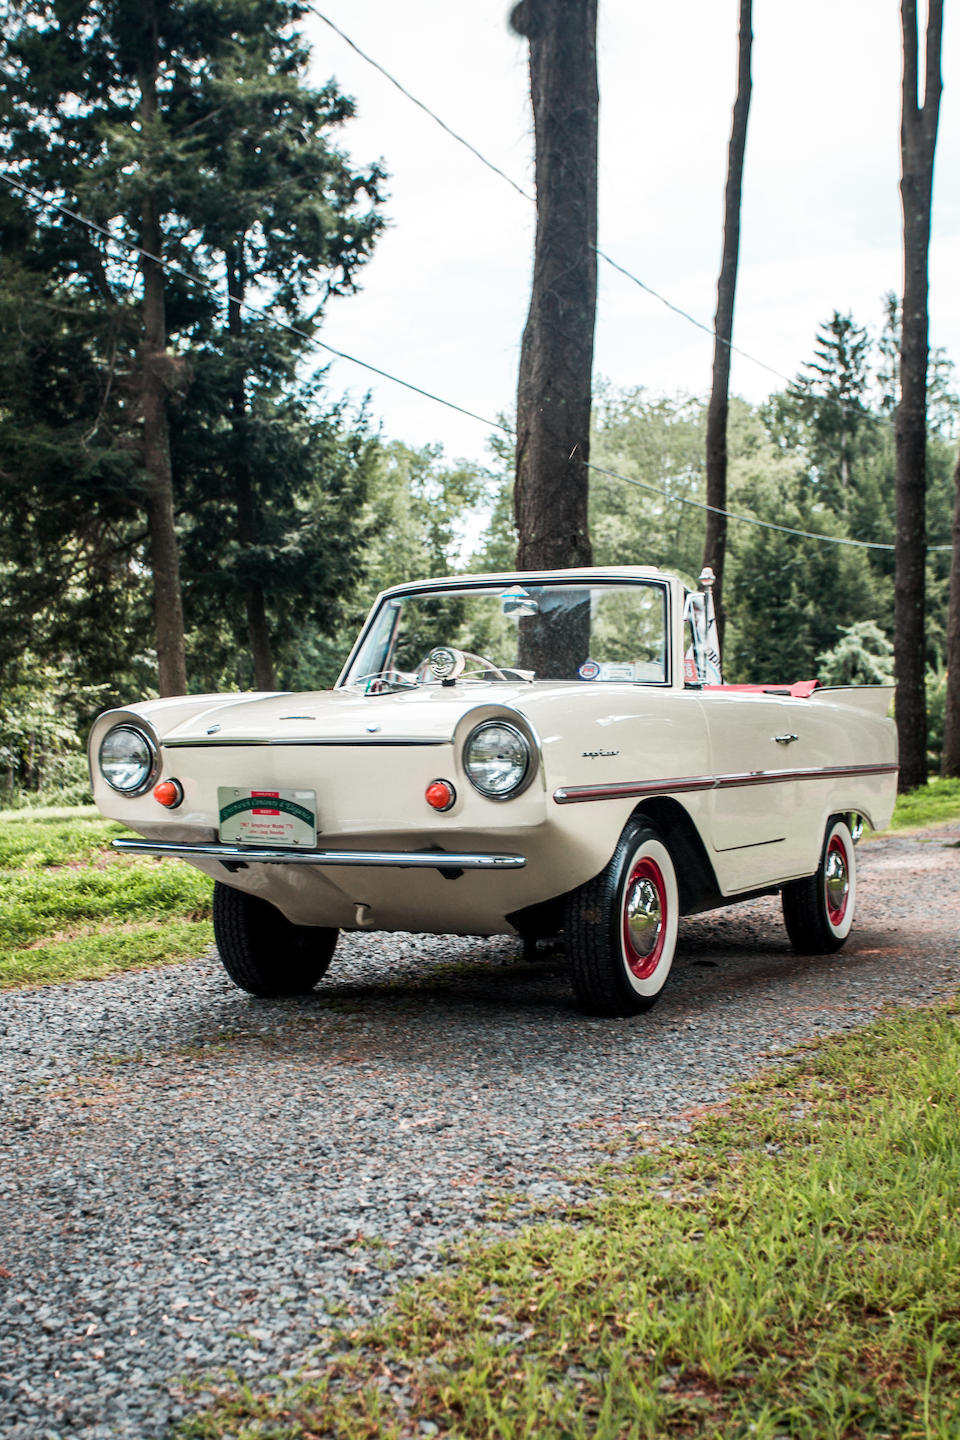 <b>1967 Amphicar 770 Convertible</b><br />Chassis no. 200085<br />Engine no. FC90507HE